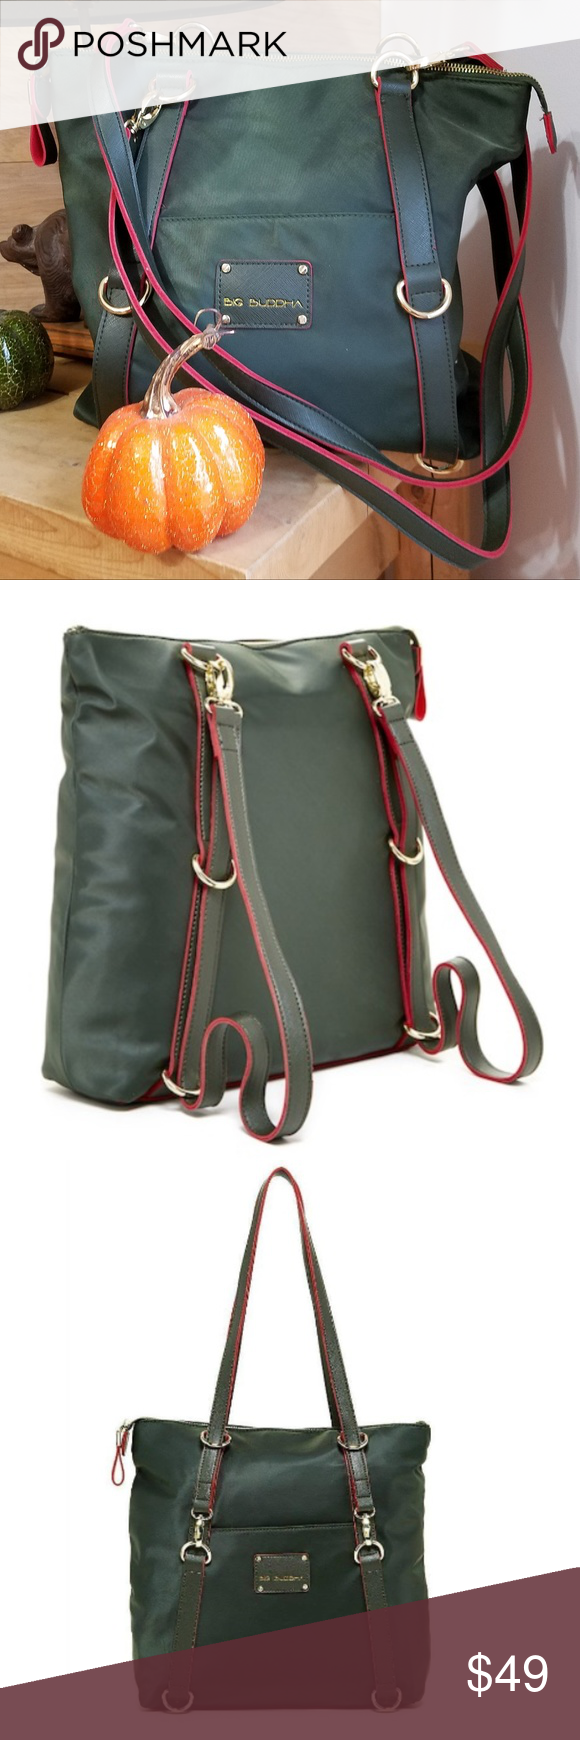 7587aaf9bcf1 Big Buddha Luke Convertible Bag Backpack Tote-NWOT NEW WITHOUT TAGS ...  Sharp forest green